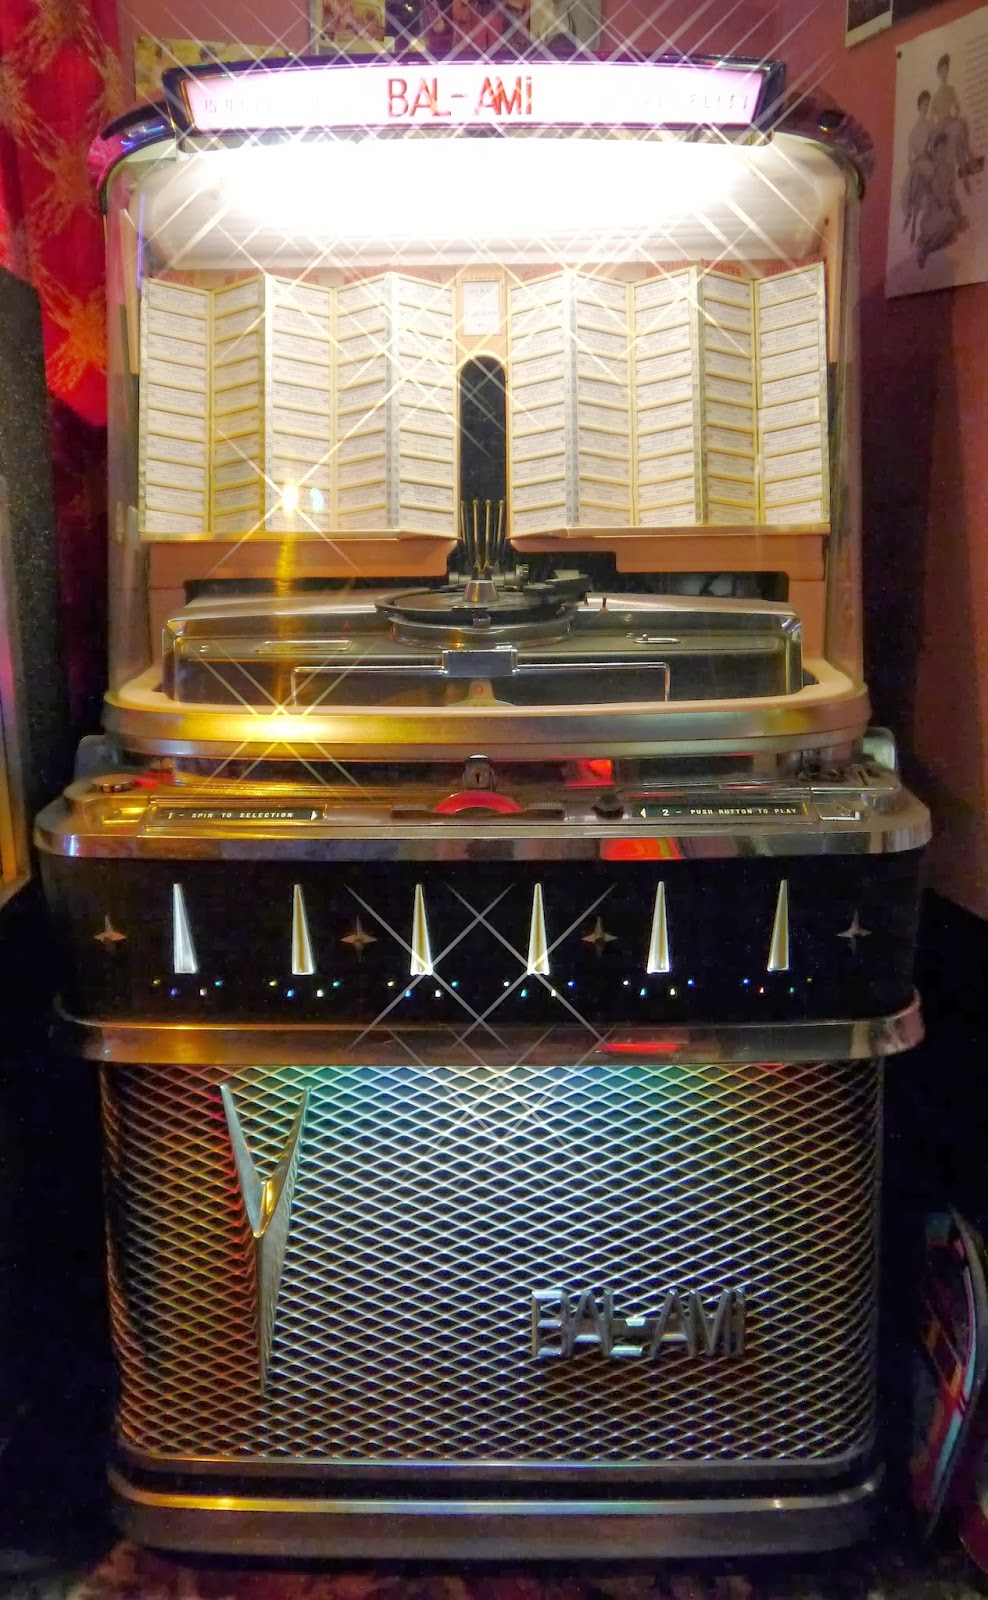 'Balami I200' 1957 Jukebox